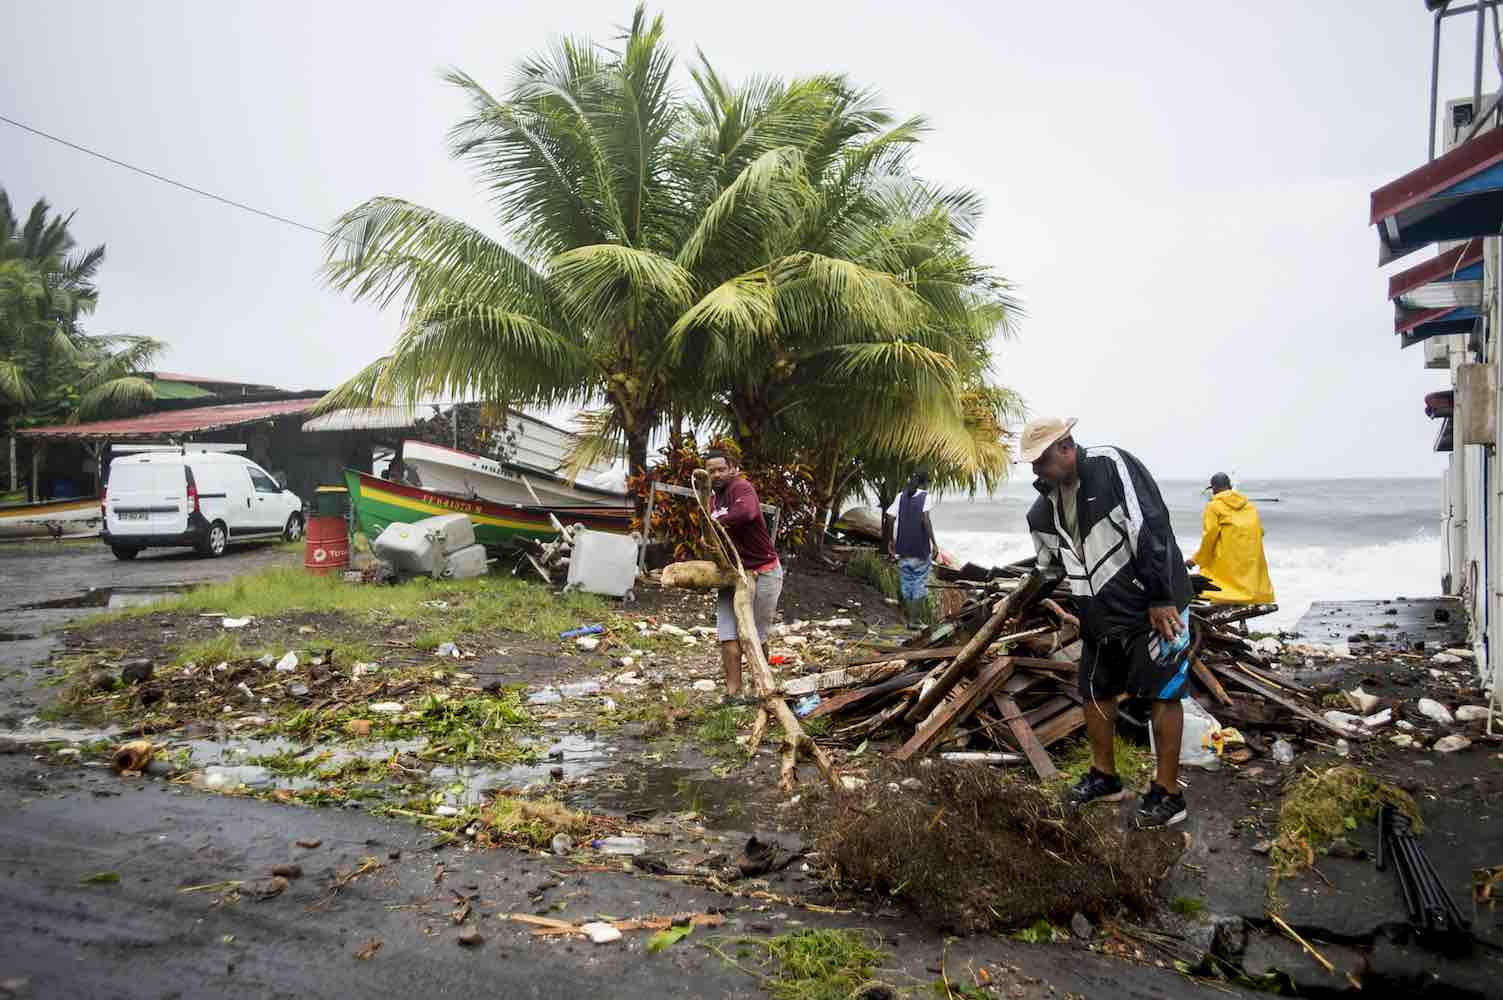 "<div class=""meta image-caption""><div class=""origin-logo origin-image wtvd""><span>wtvd</span></div><span class=""caption-text"">People clear debris in Saint-Pierre, on the French Caribbean island of Martinique, after it was hit by Hurricane Maria, on September 19, 2017. (LIONEL CHAMOISEAU/AFP/Getty)</span></div>"